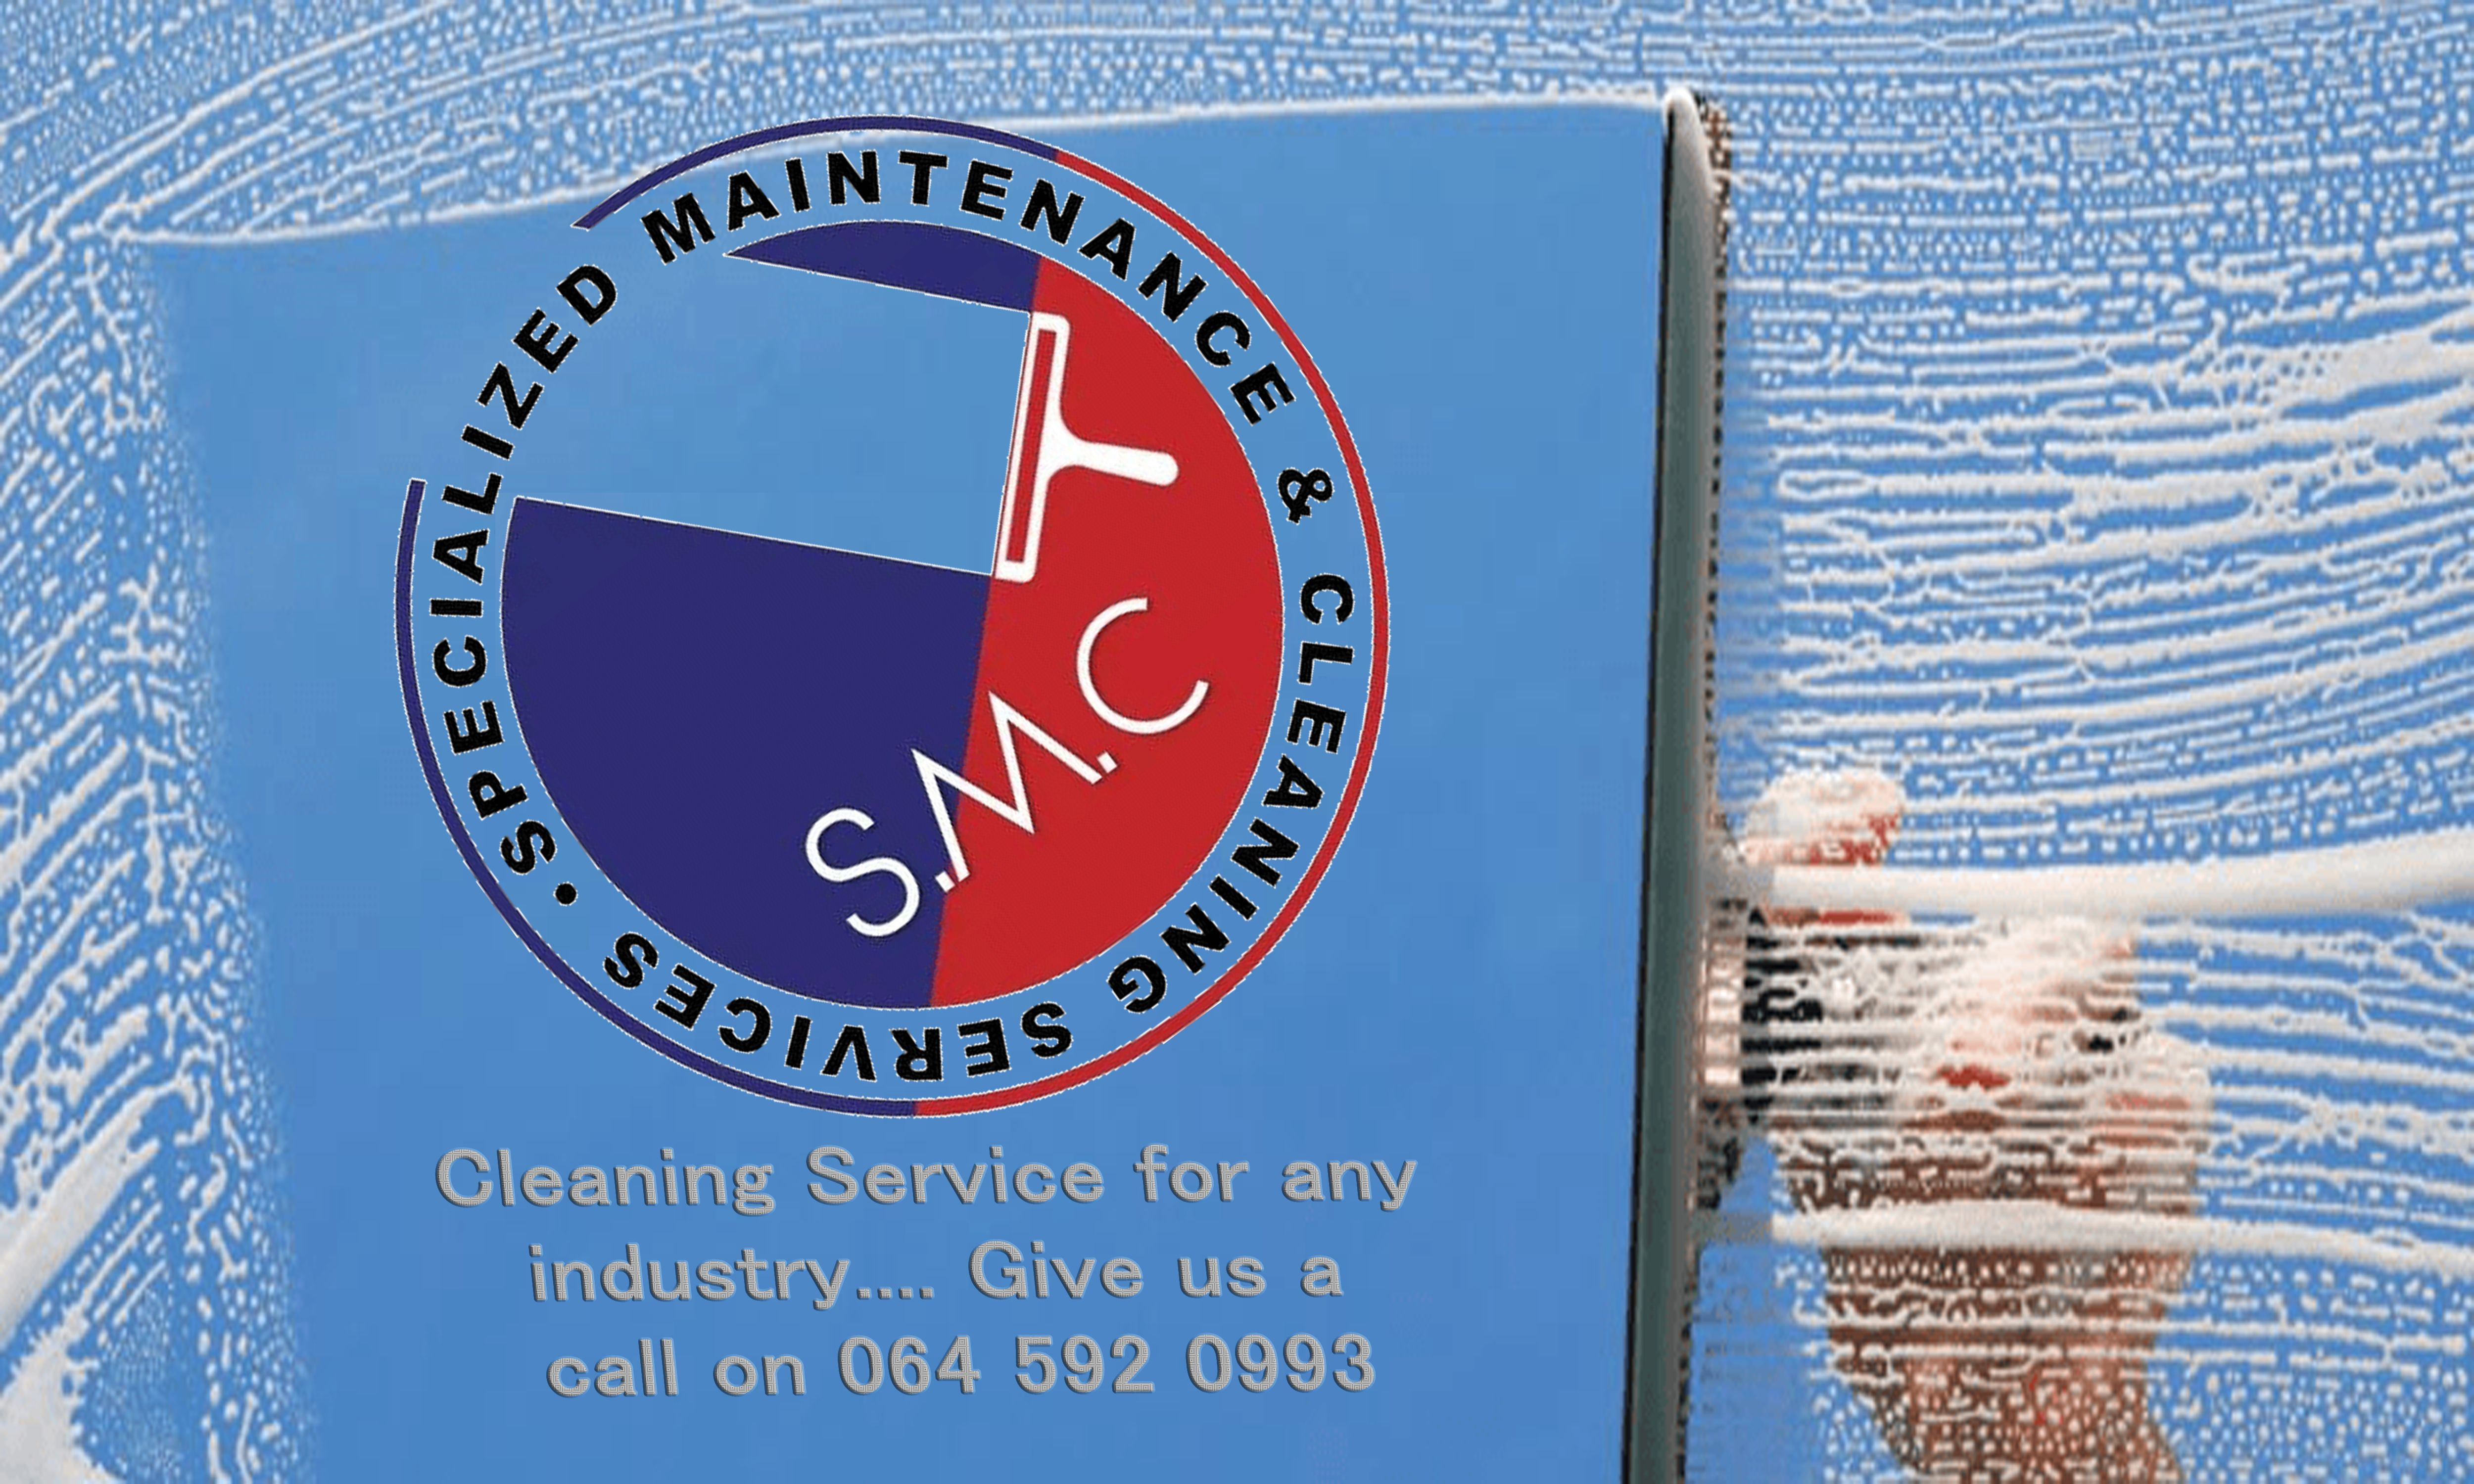 Pin on Specialized Cleaning and Maintenance